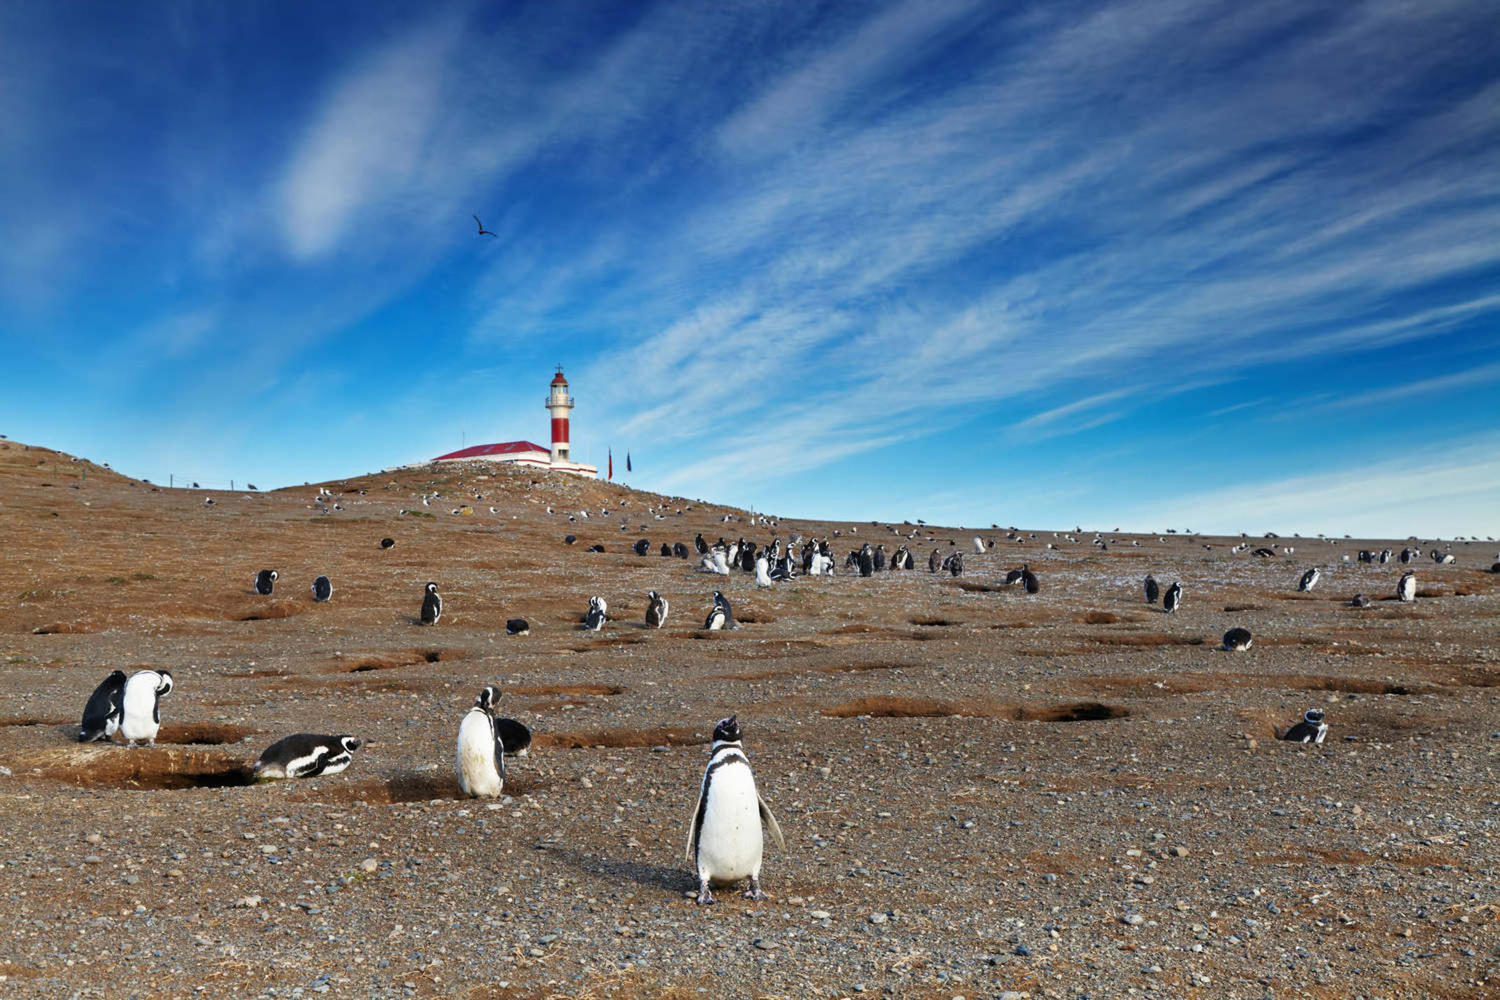 Colony of magellanic penguins on Magdalena island, Strait of Magellan